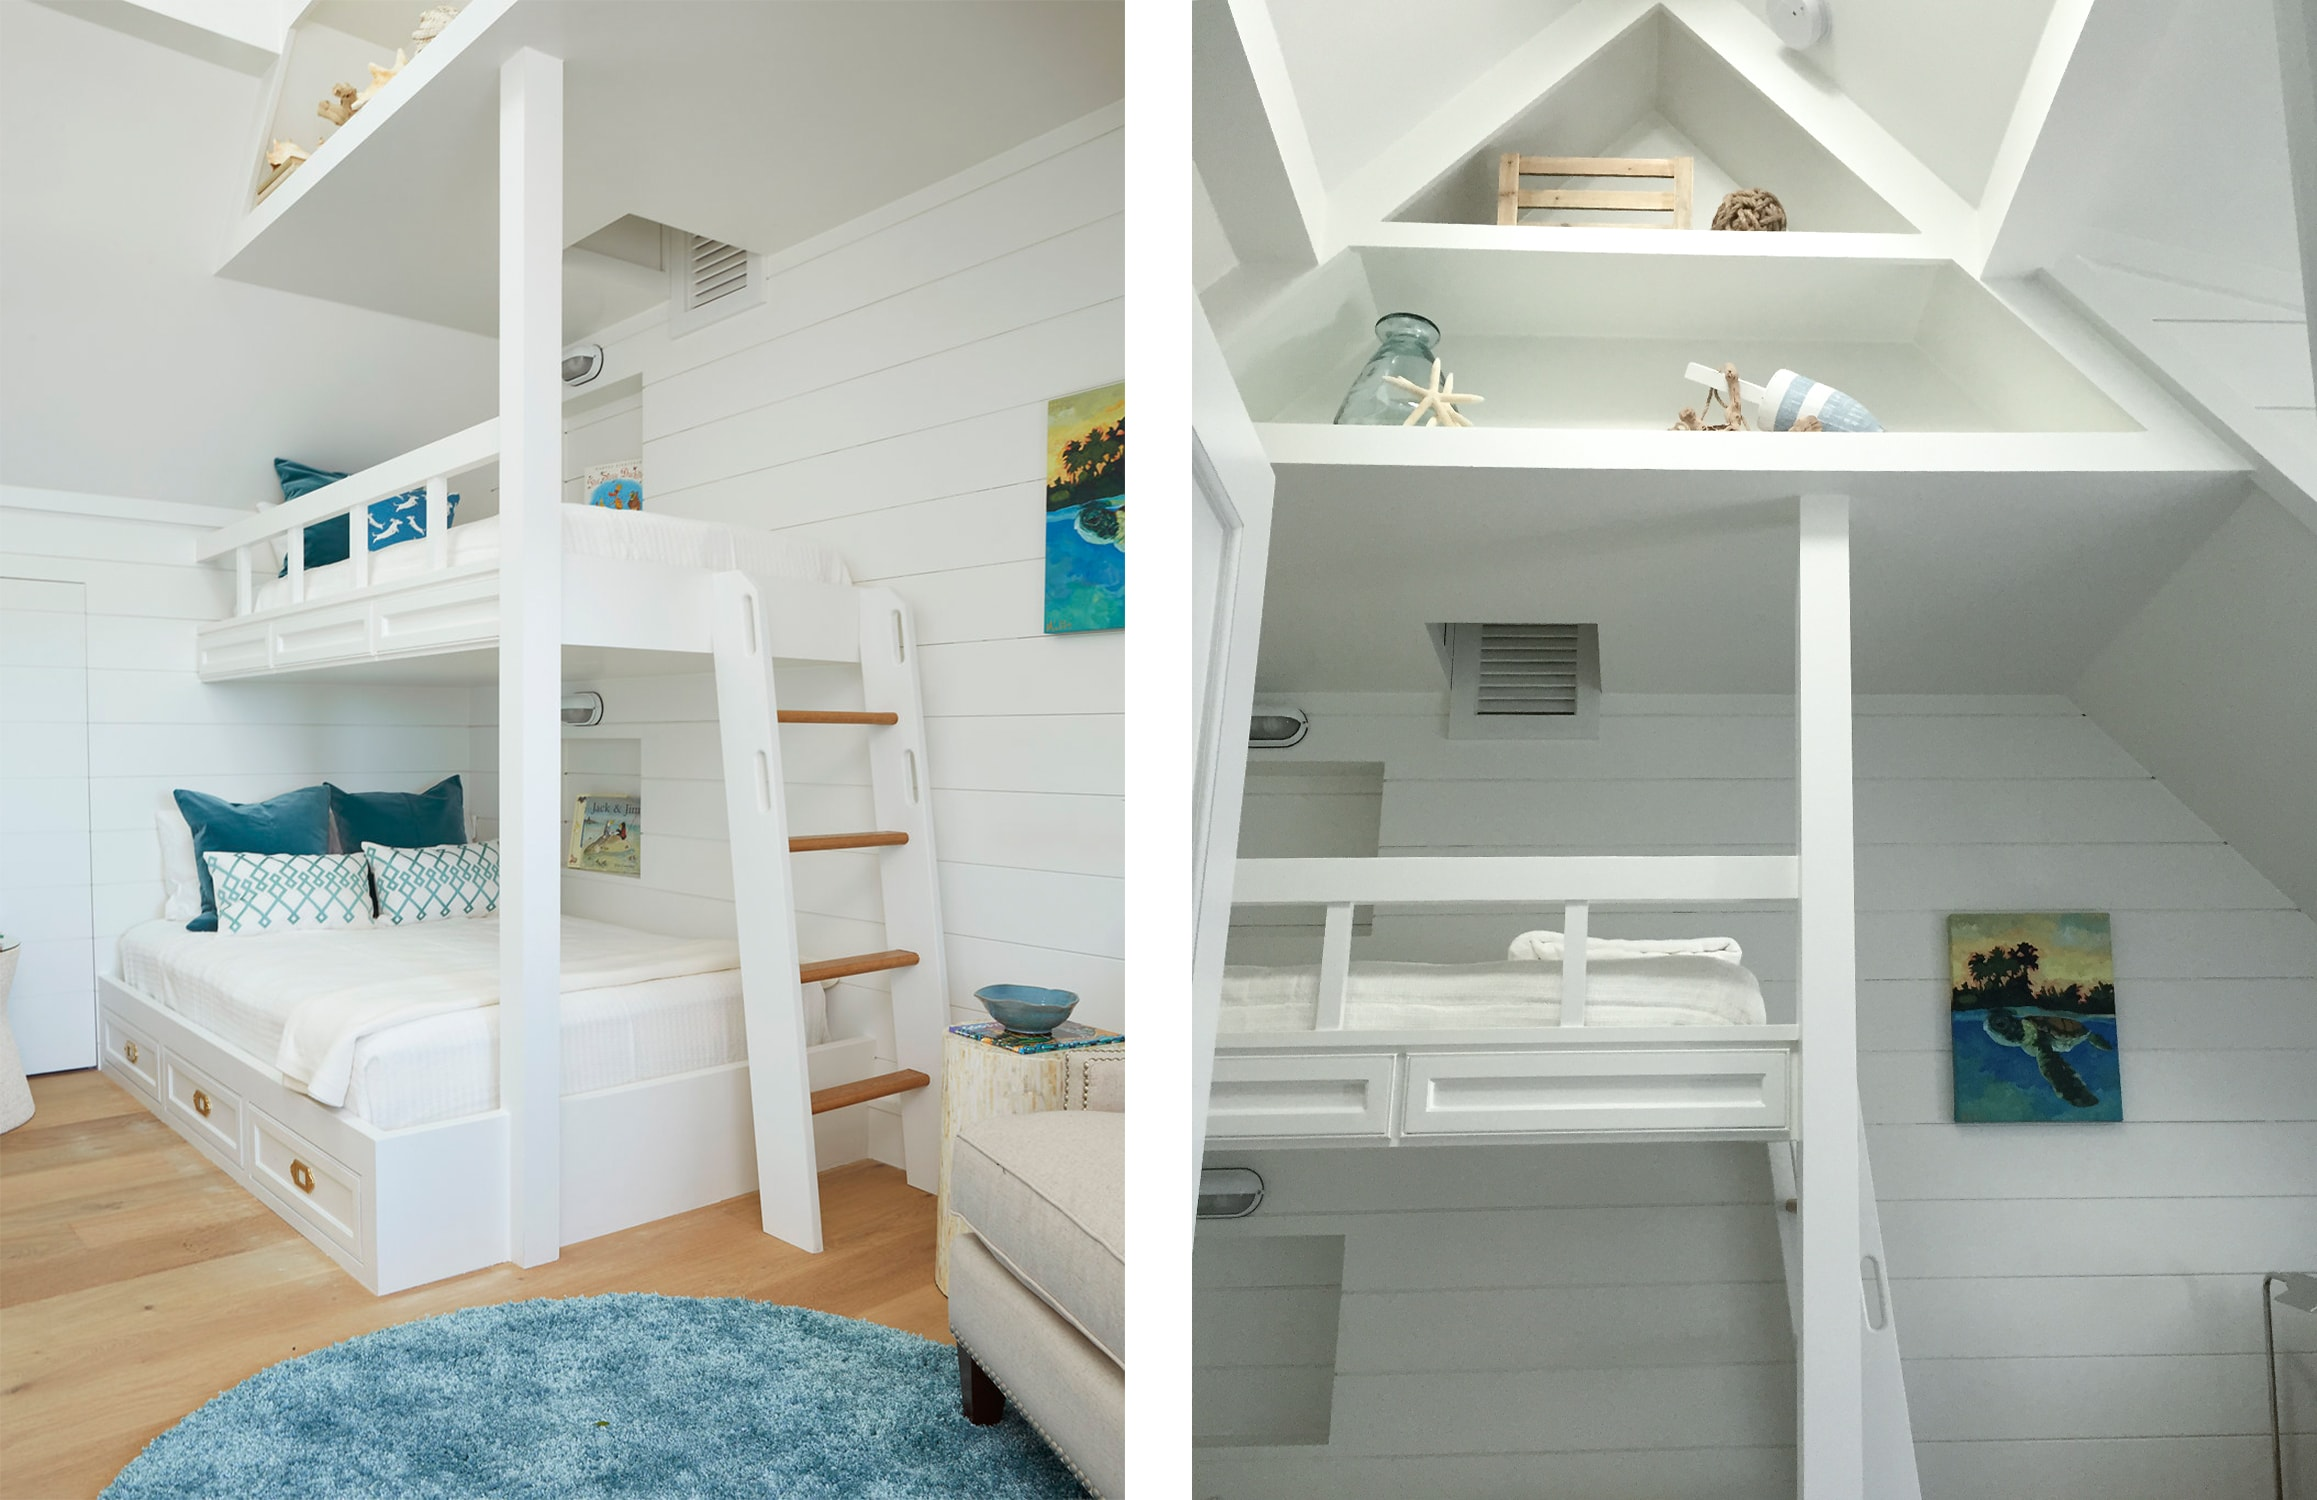 built-in kids bunkbed in our florida beach house project. shiplap walls, blue accents, and built-in shelving. - darci hether new york